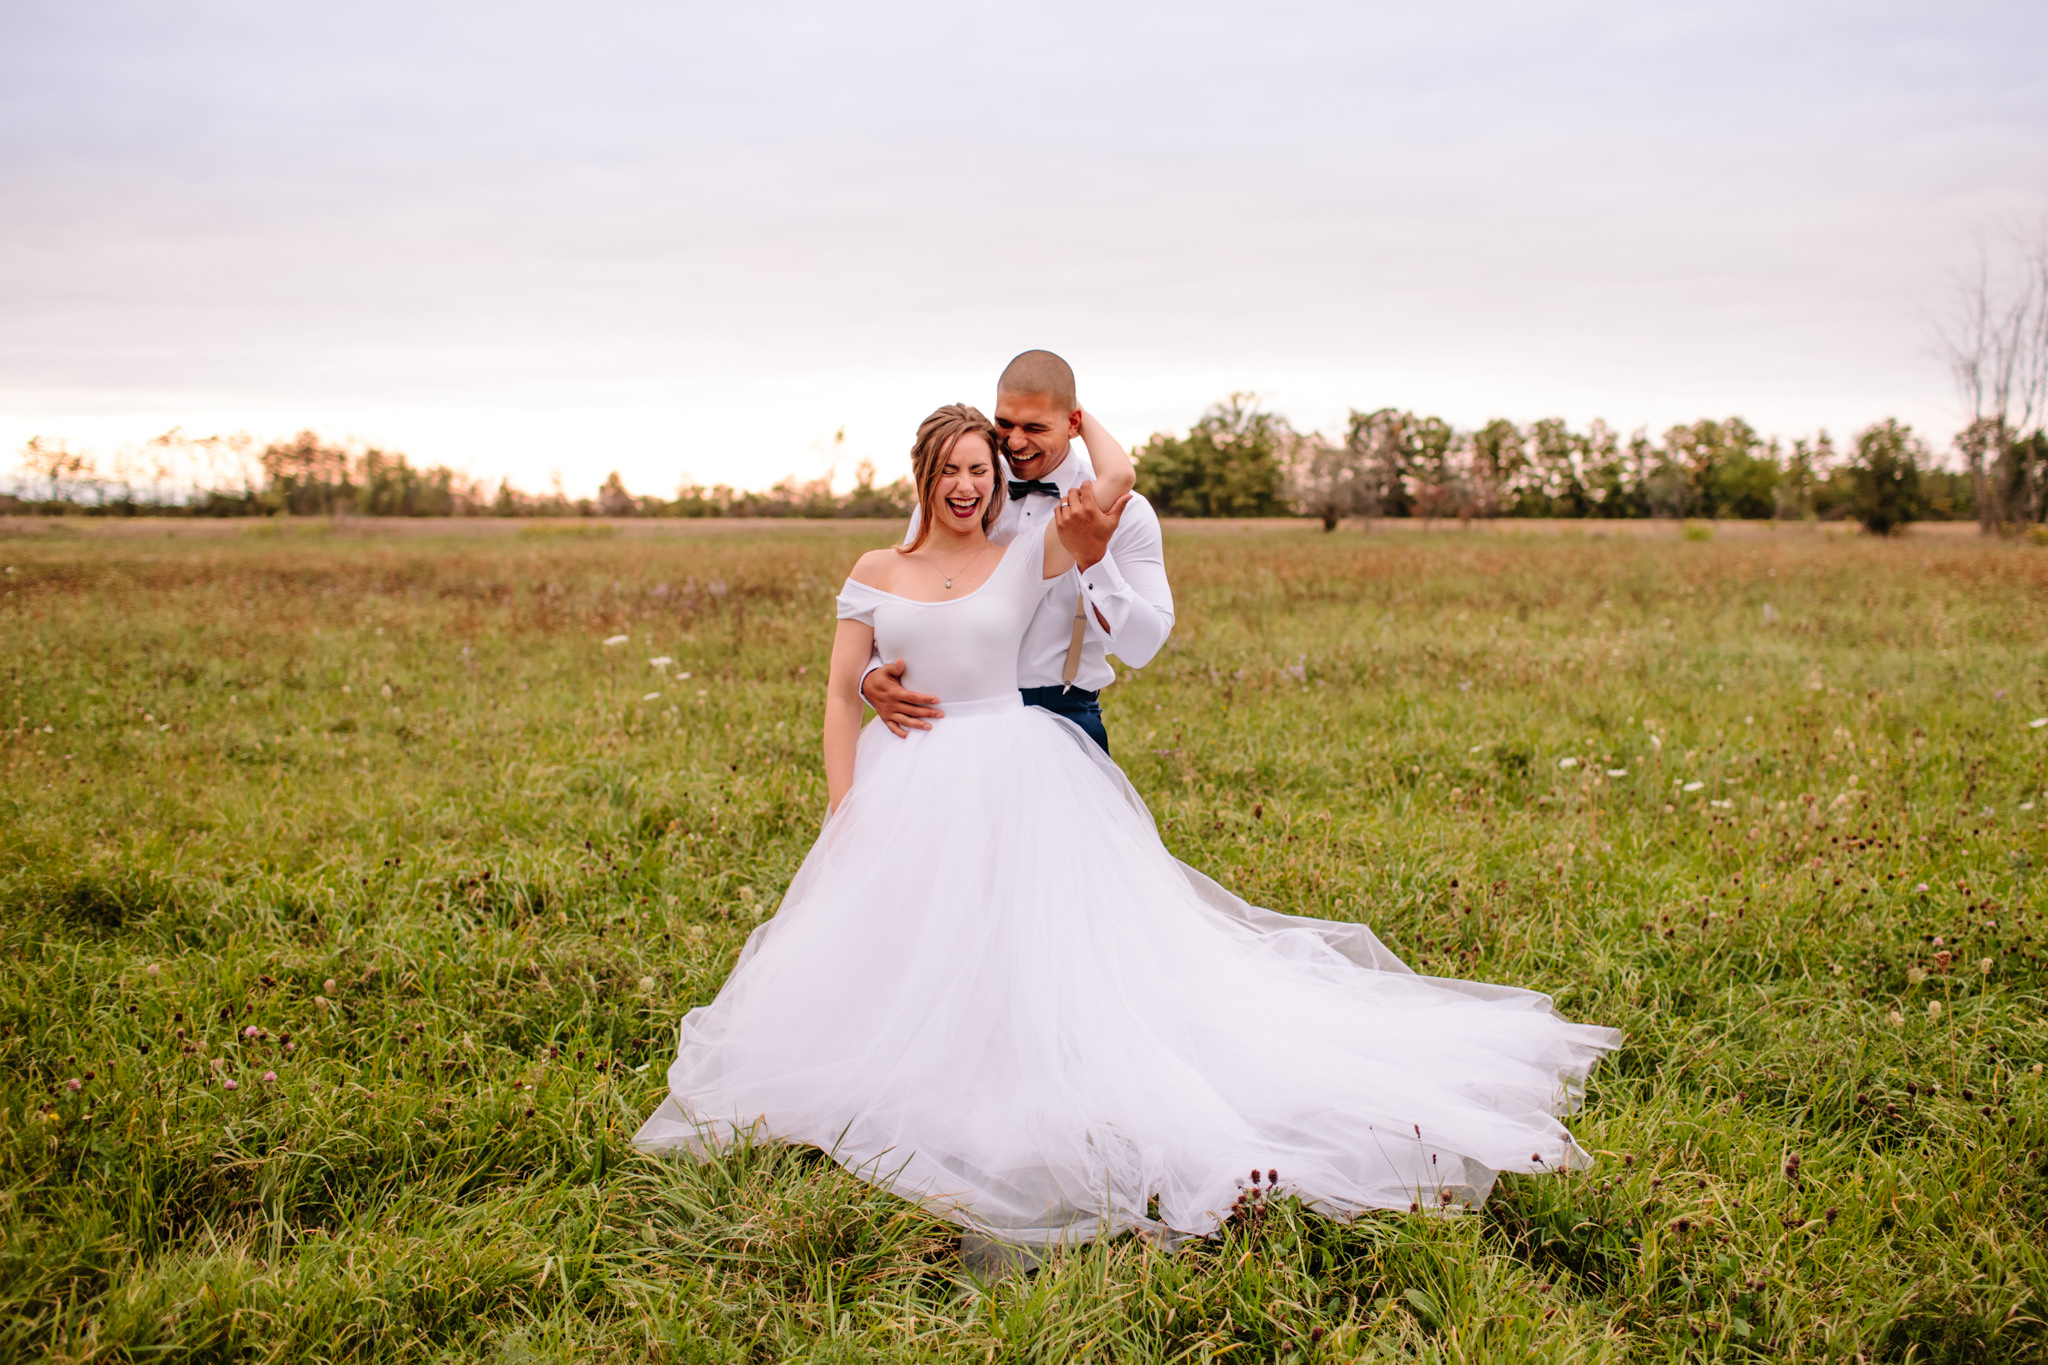 farm field with bride and groom standing and embracing